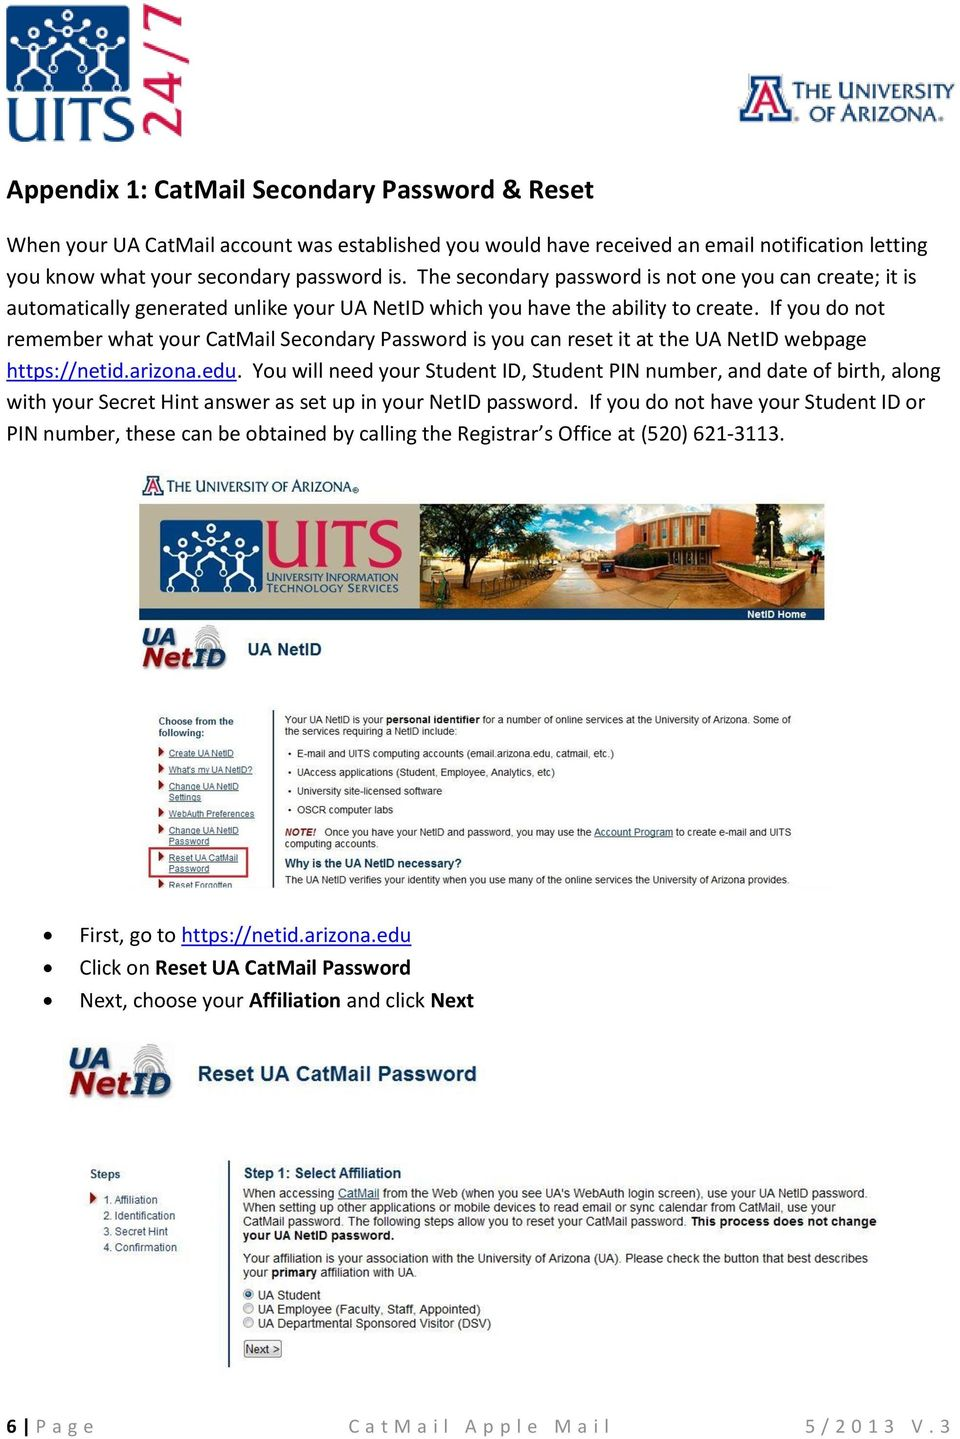 If you do not remember what your CatMail Secondary Password is you can reset it at the UA NetID webpage https://netid.arizona.edu.